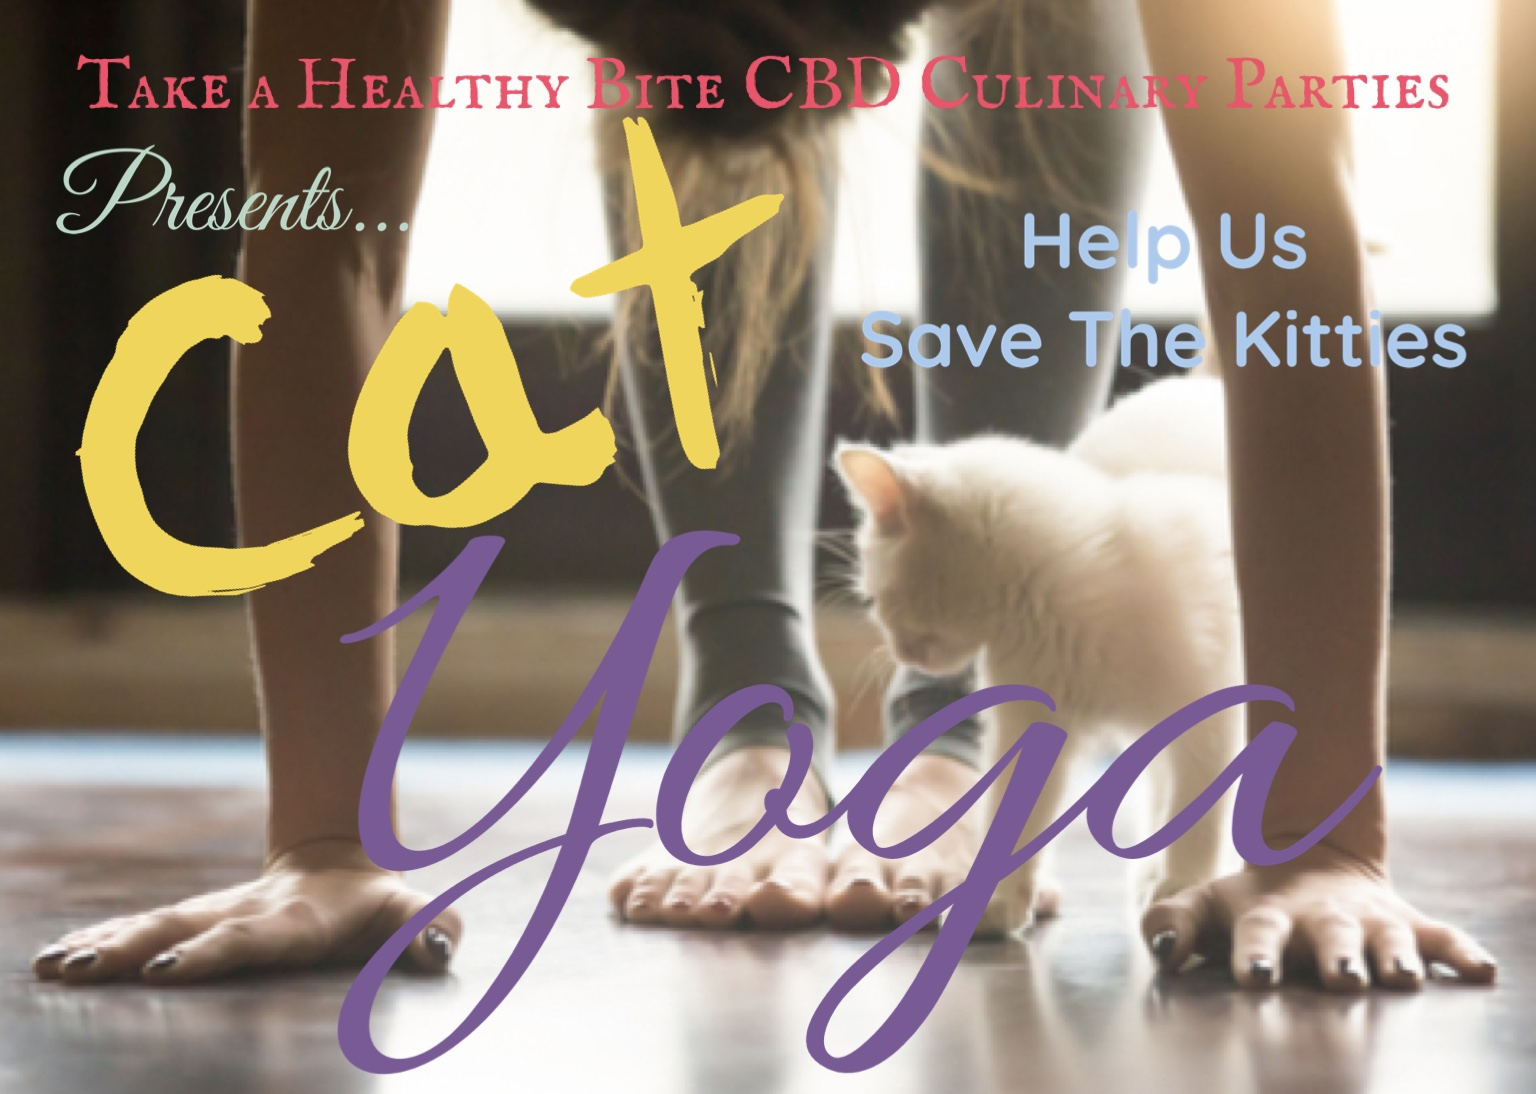 Take a Healthy Bite CBD Culinary Parties Presents: CAT YOGA